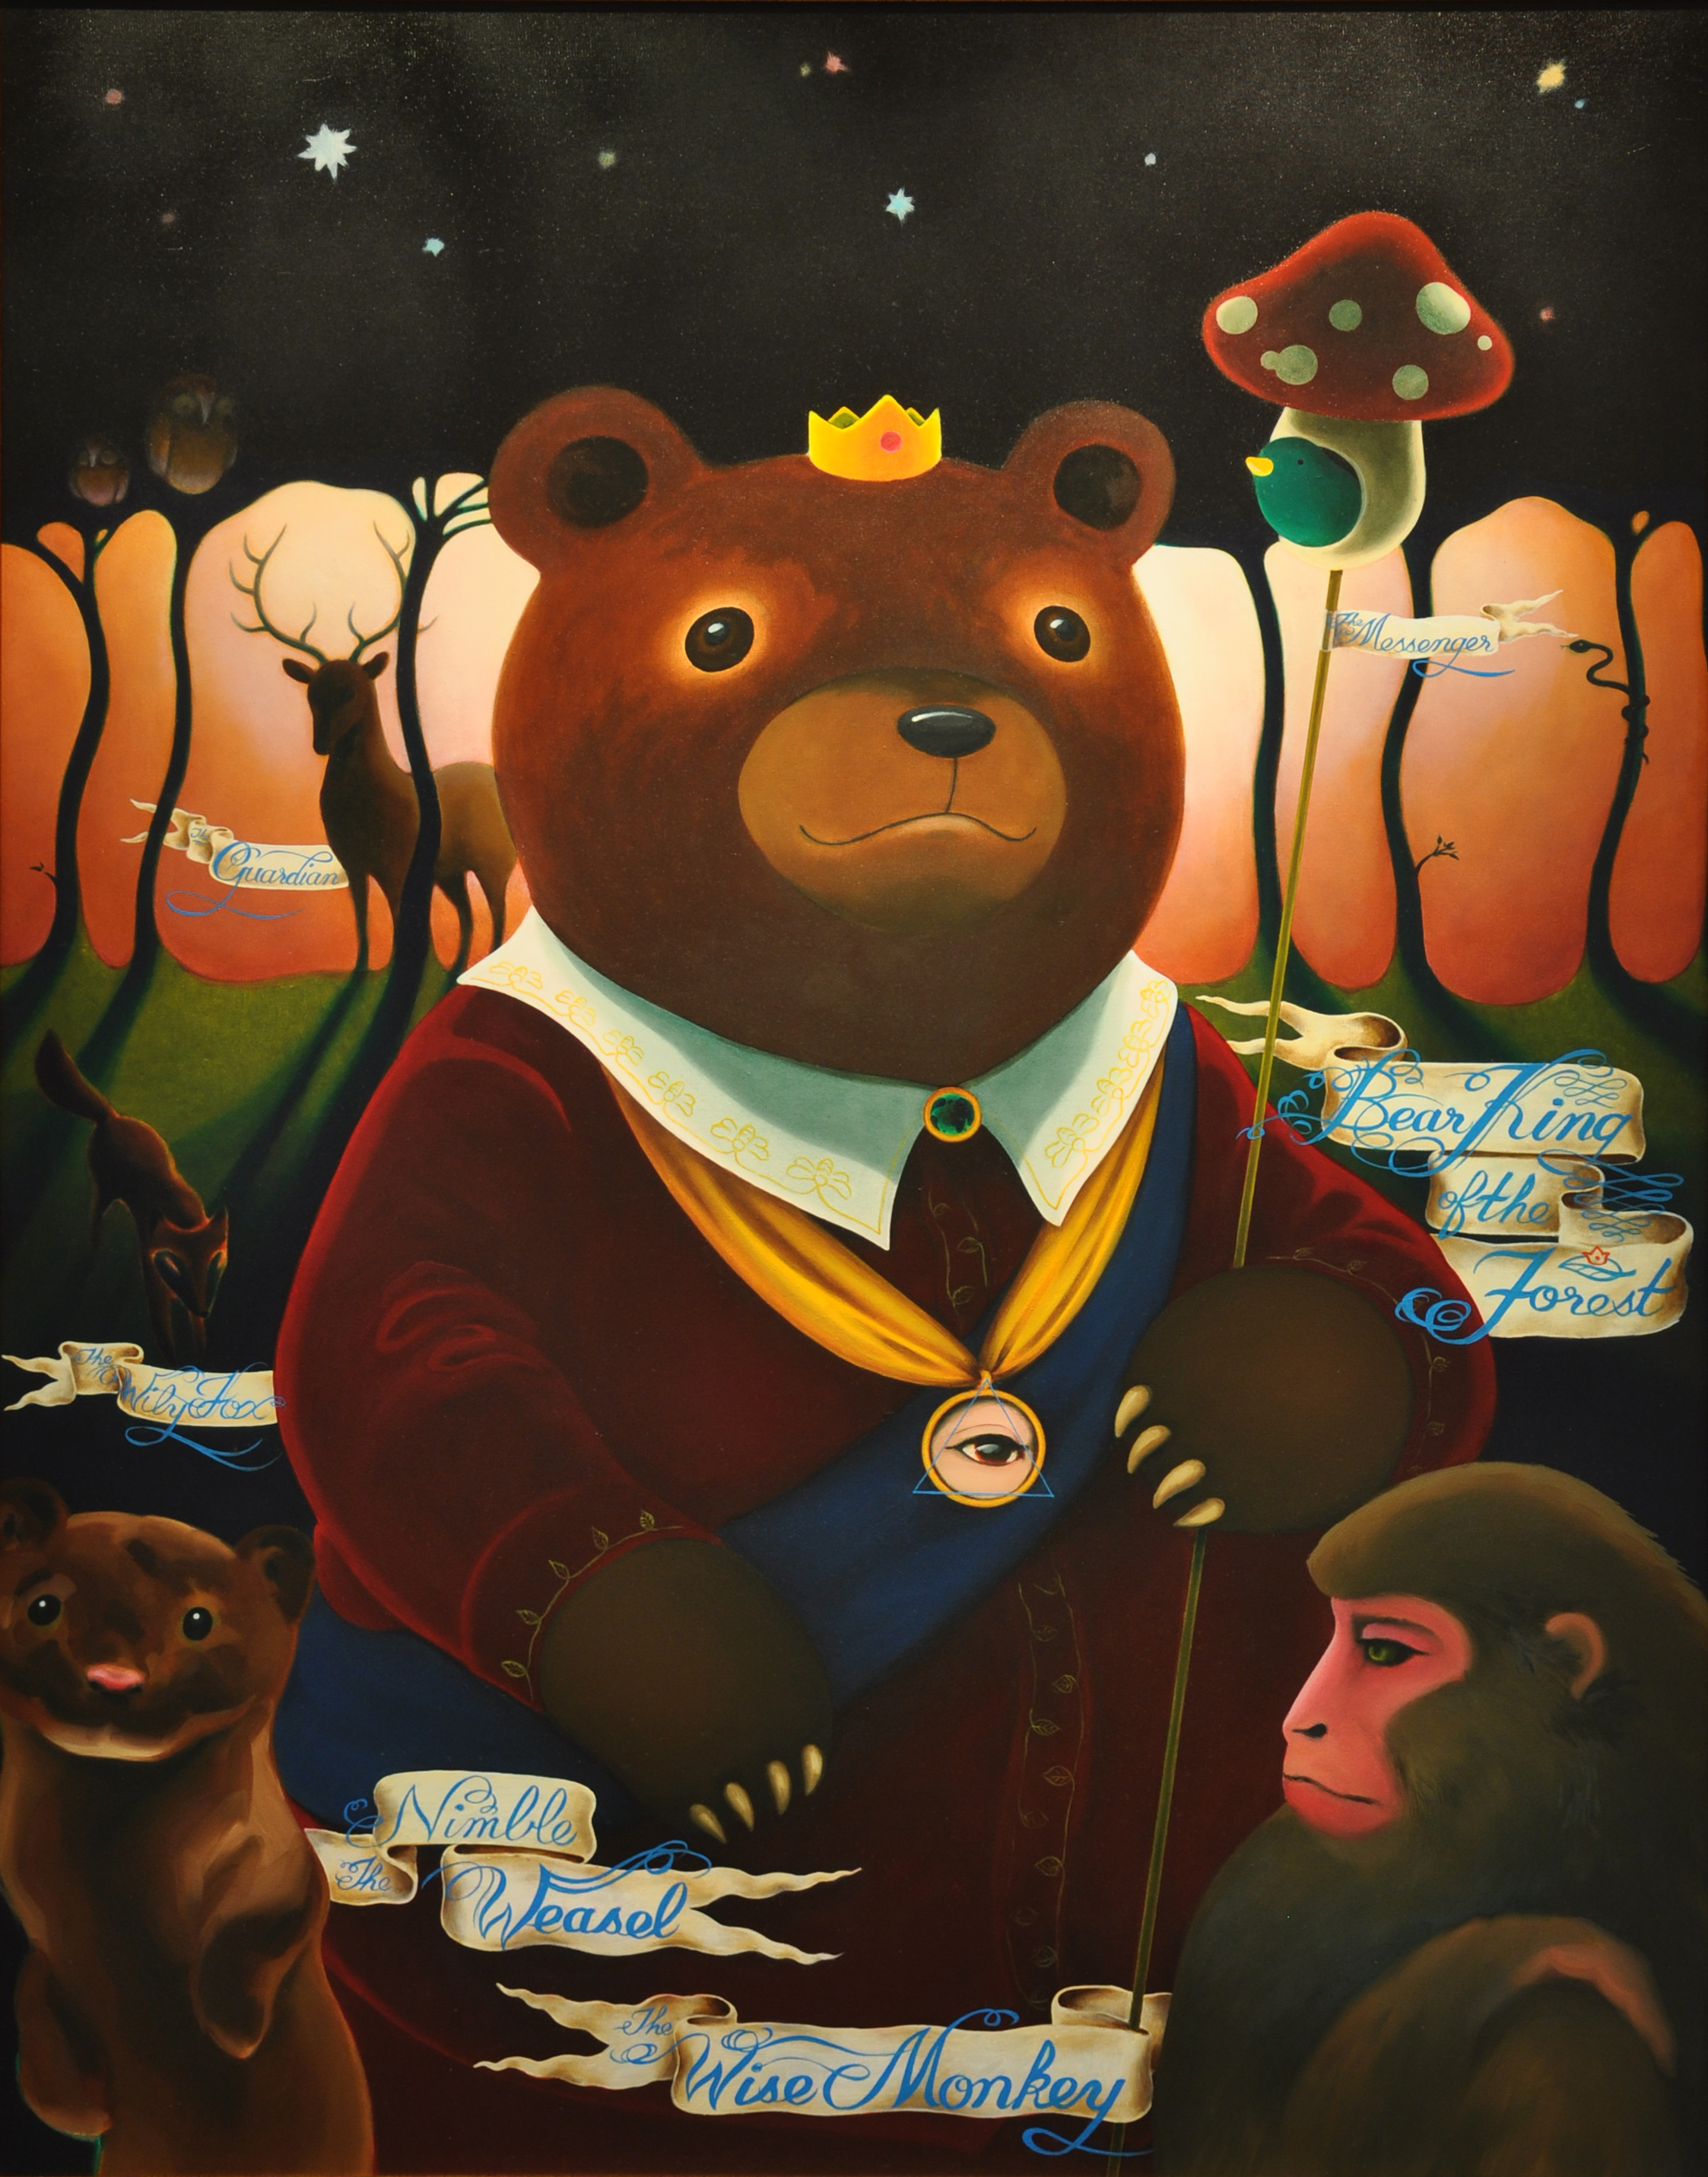 Bear King of the Forest 森林裡的熊大王